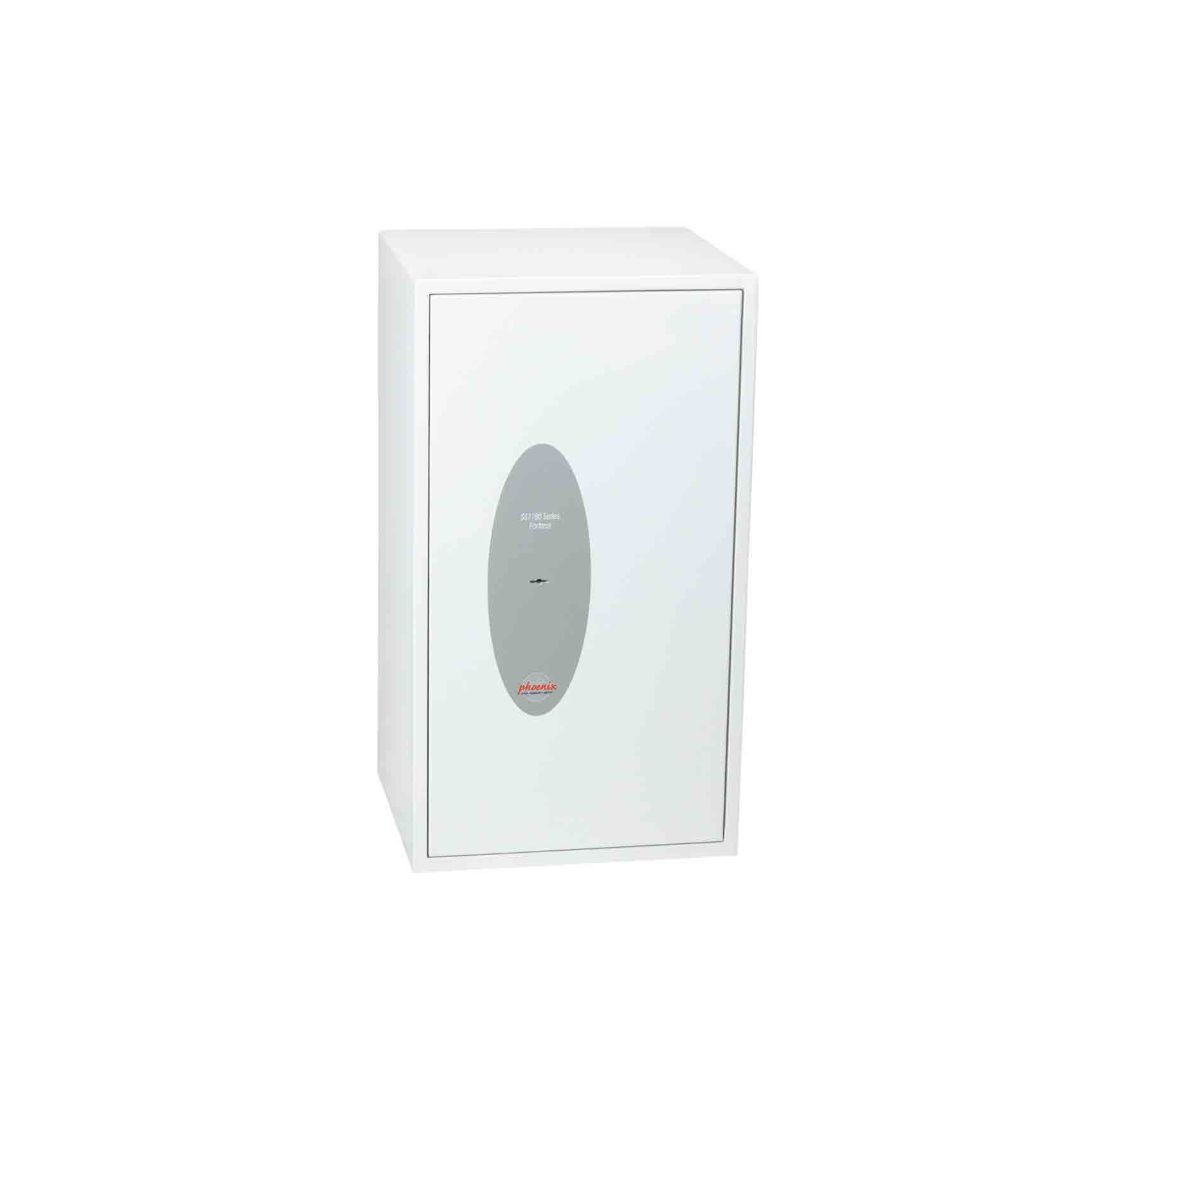 Phoenix Fortress S2 Security Safe with Key Lock Size 4